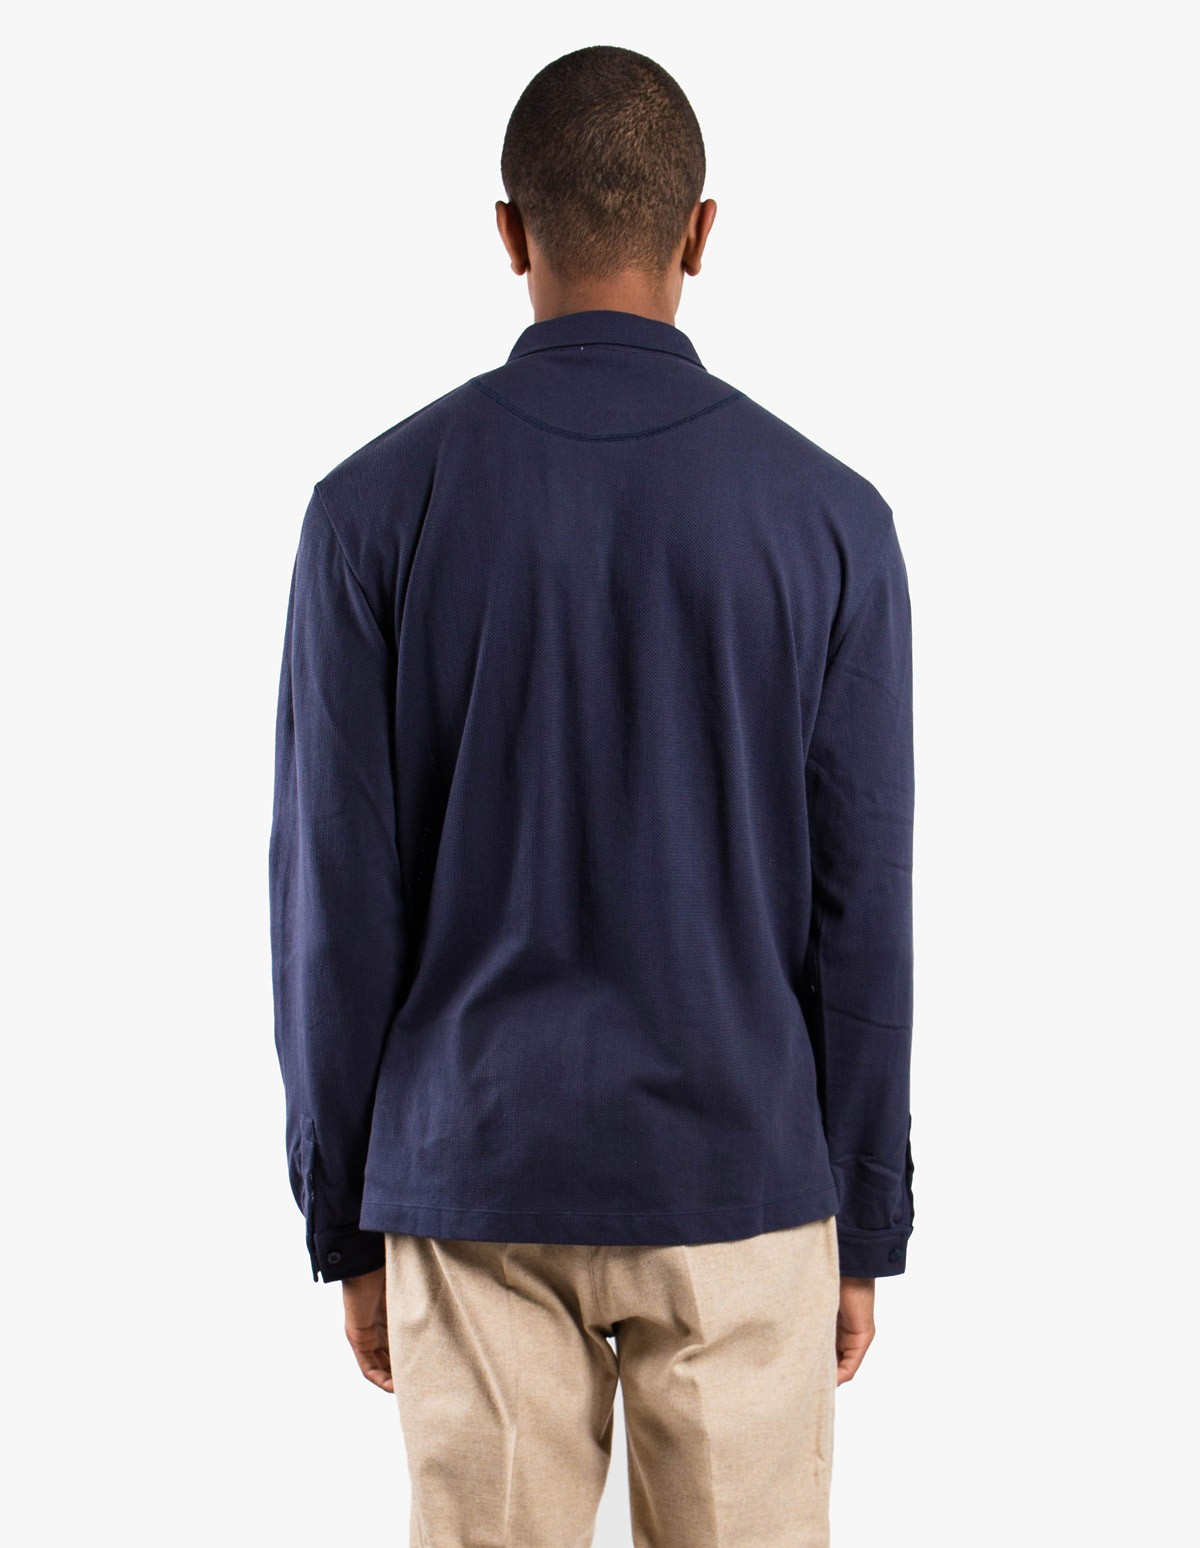 Sunspel Long Sleeve - Riviera Polo  in Navy